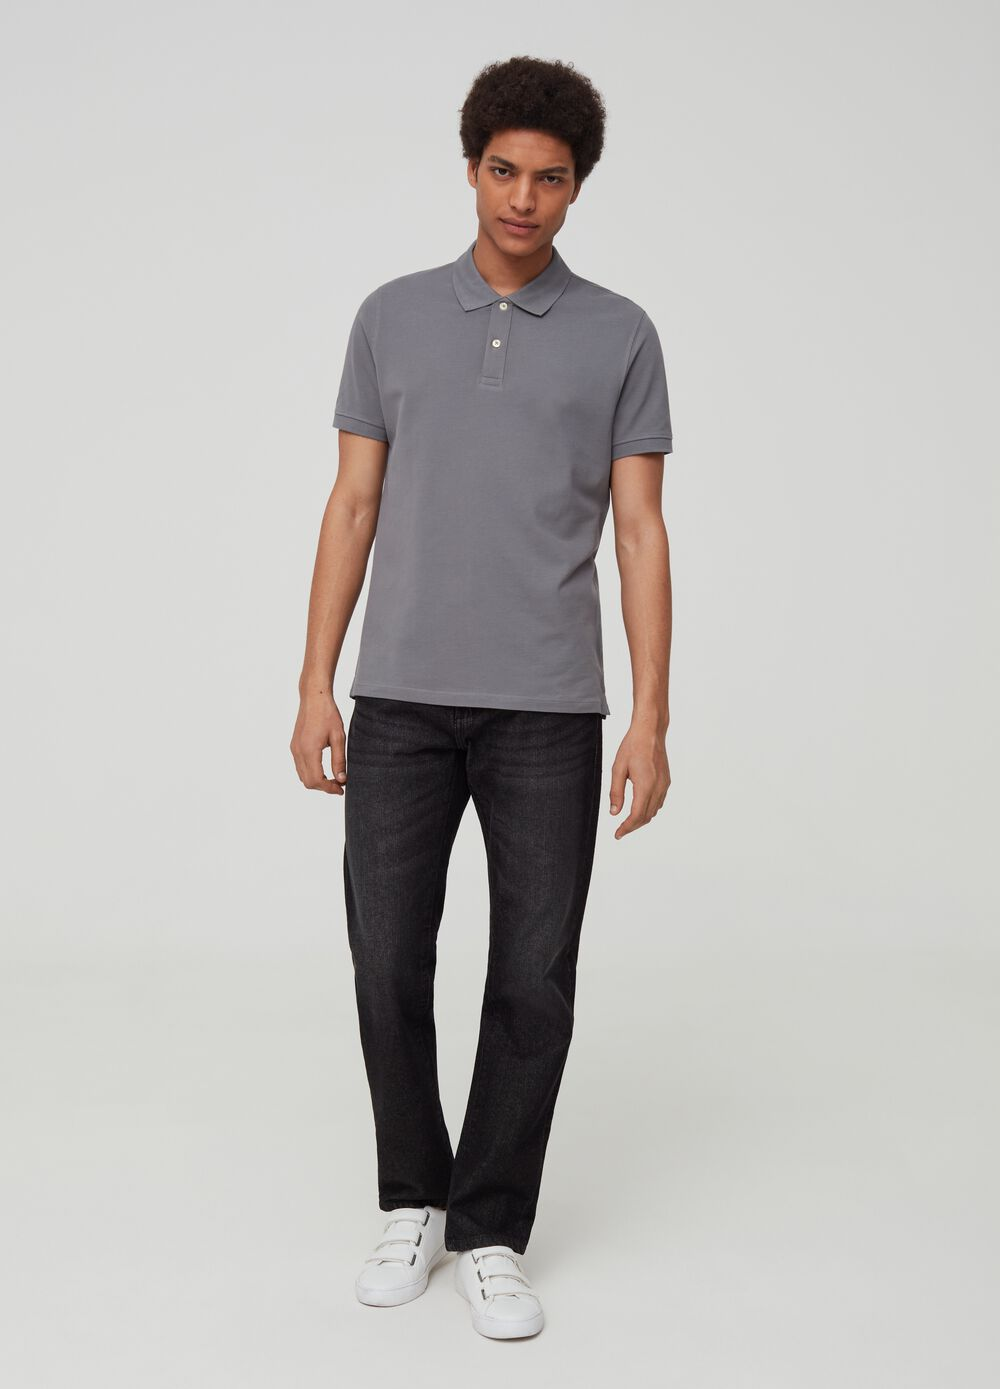 Polo shirt in 100% Pima cotton